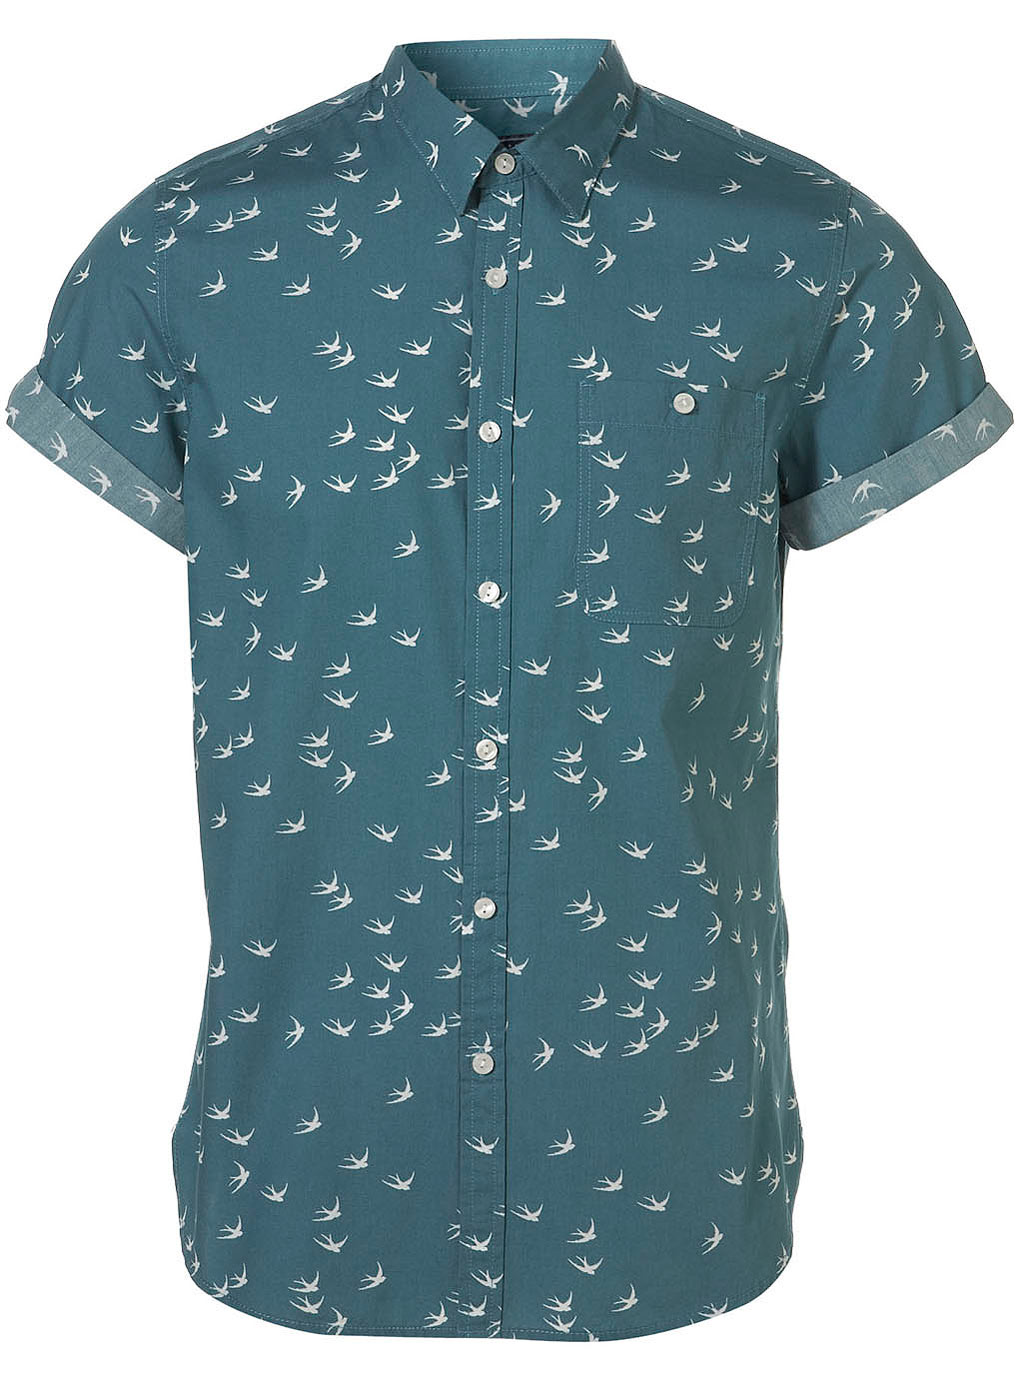 Topman green swallow pattern short sleeve shirt in green for Printed short sleeve shirts